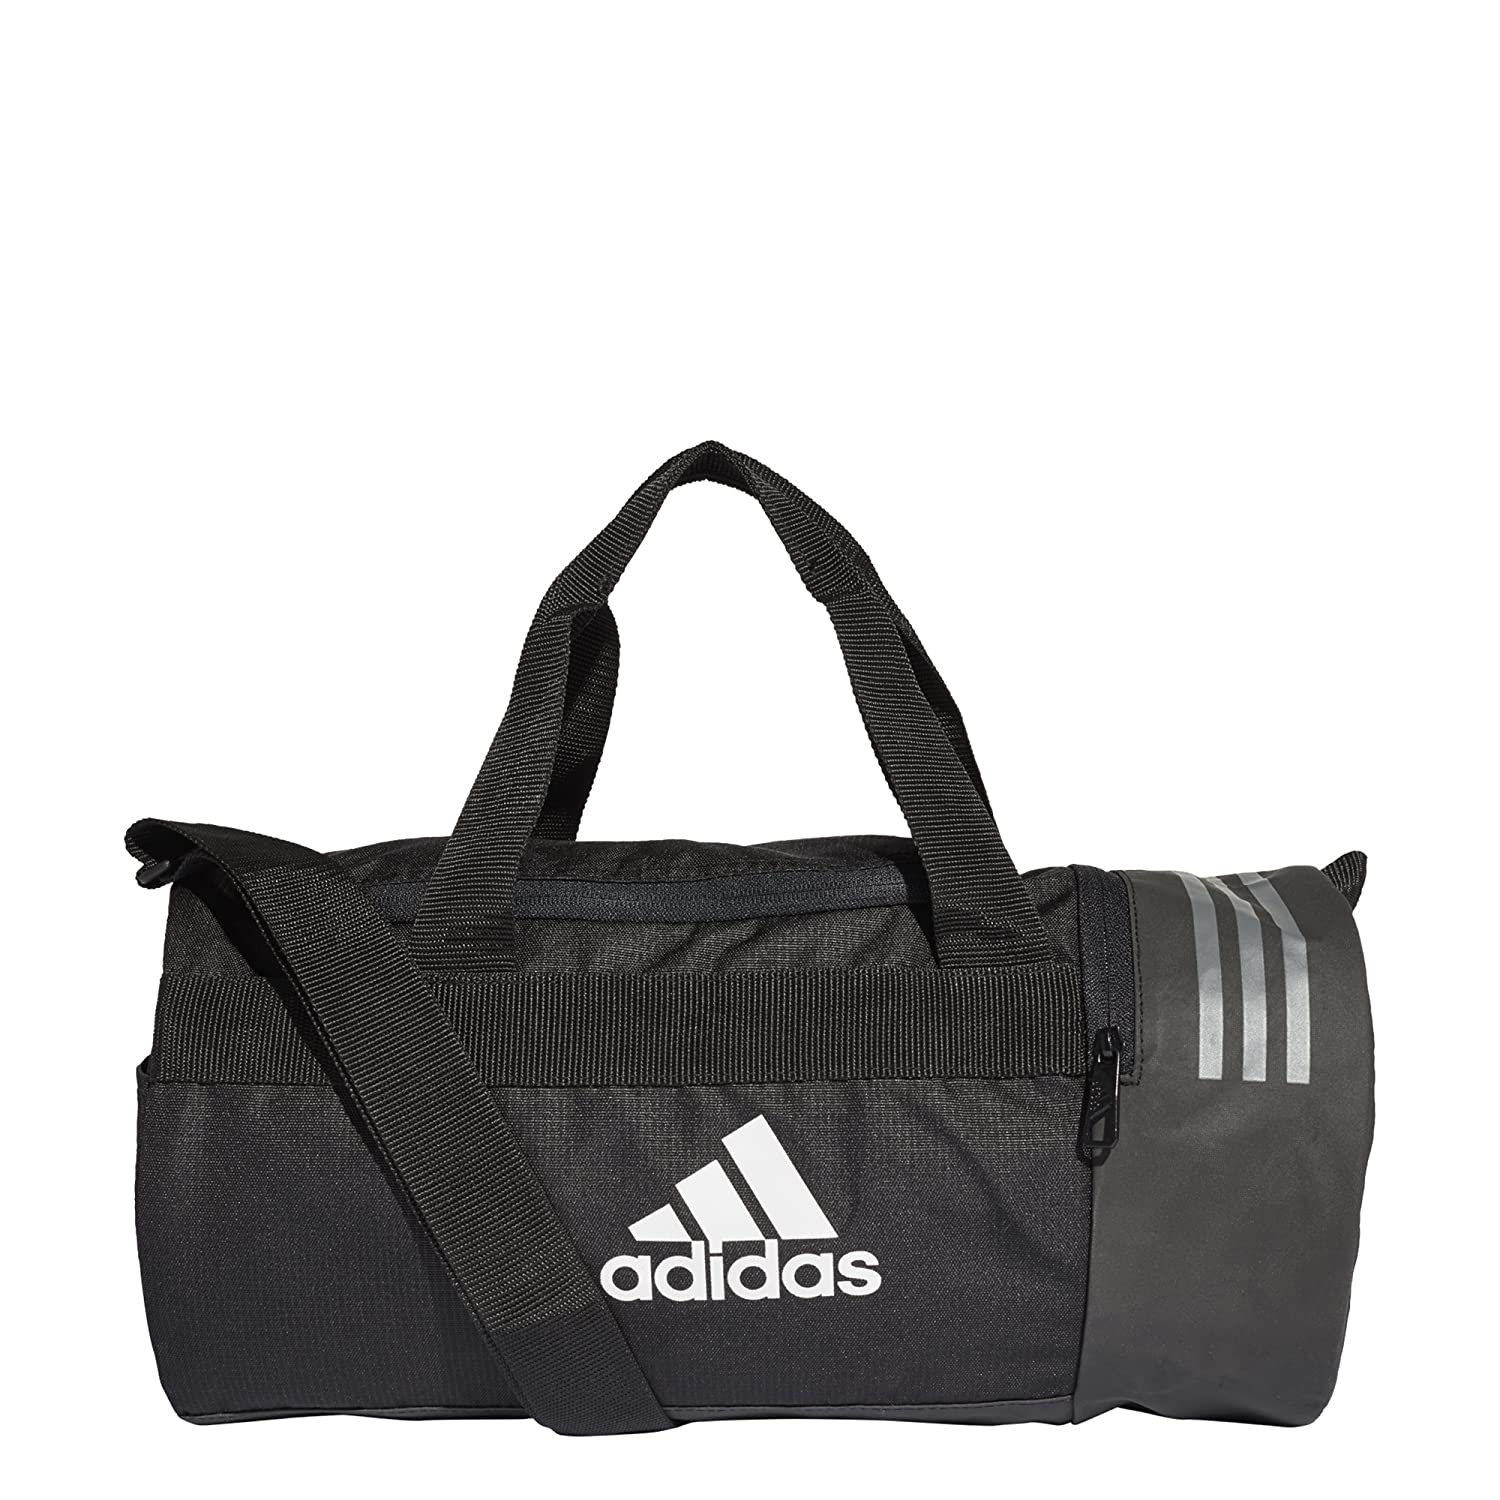 adidas Convertible 3-Stripes Duffel Bag  Amazon.co.uk  Sports   Outdoors 26dbbd5433c71